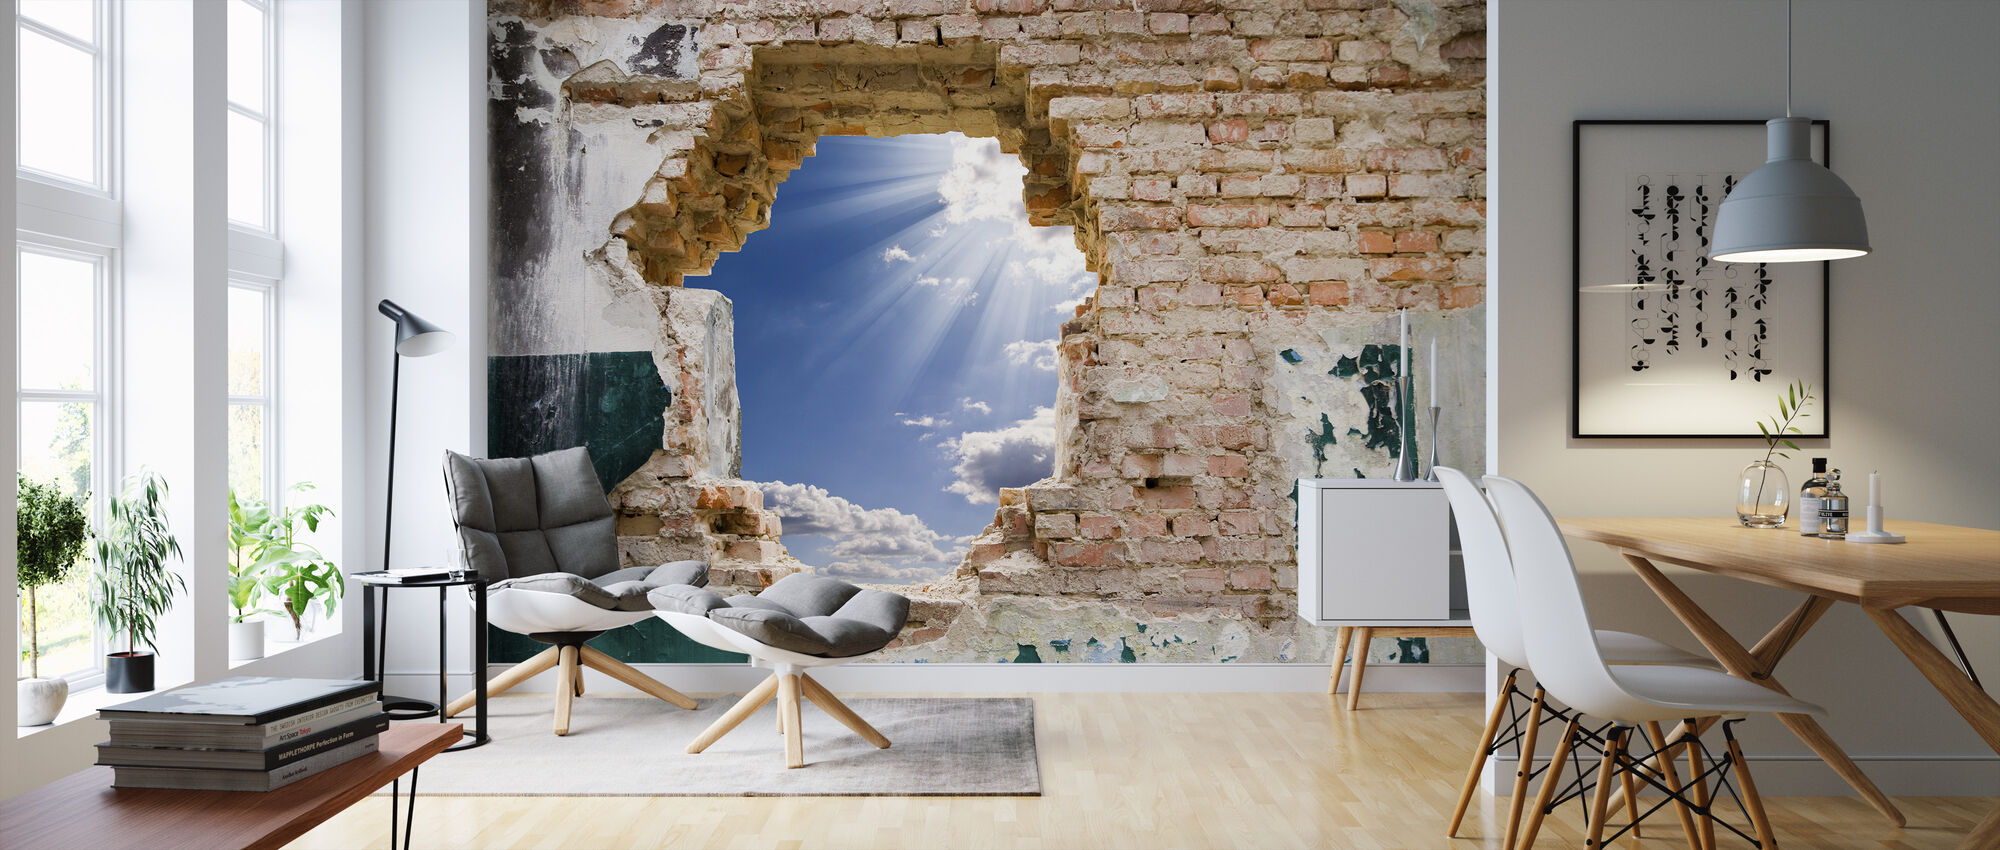 Blue Sky in an Old Wall - Wallpaper - Living Room